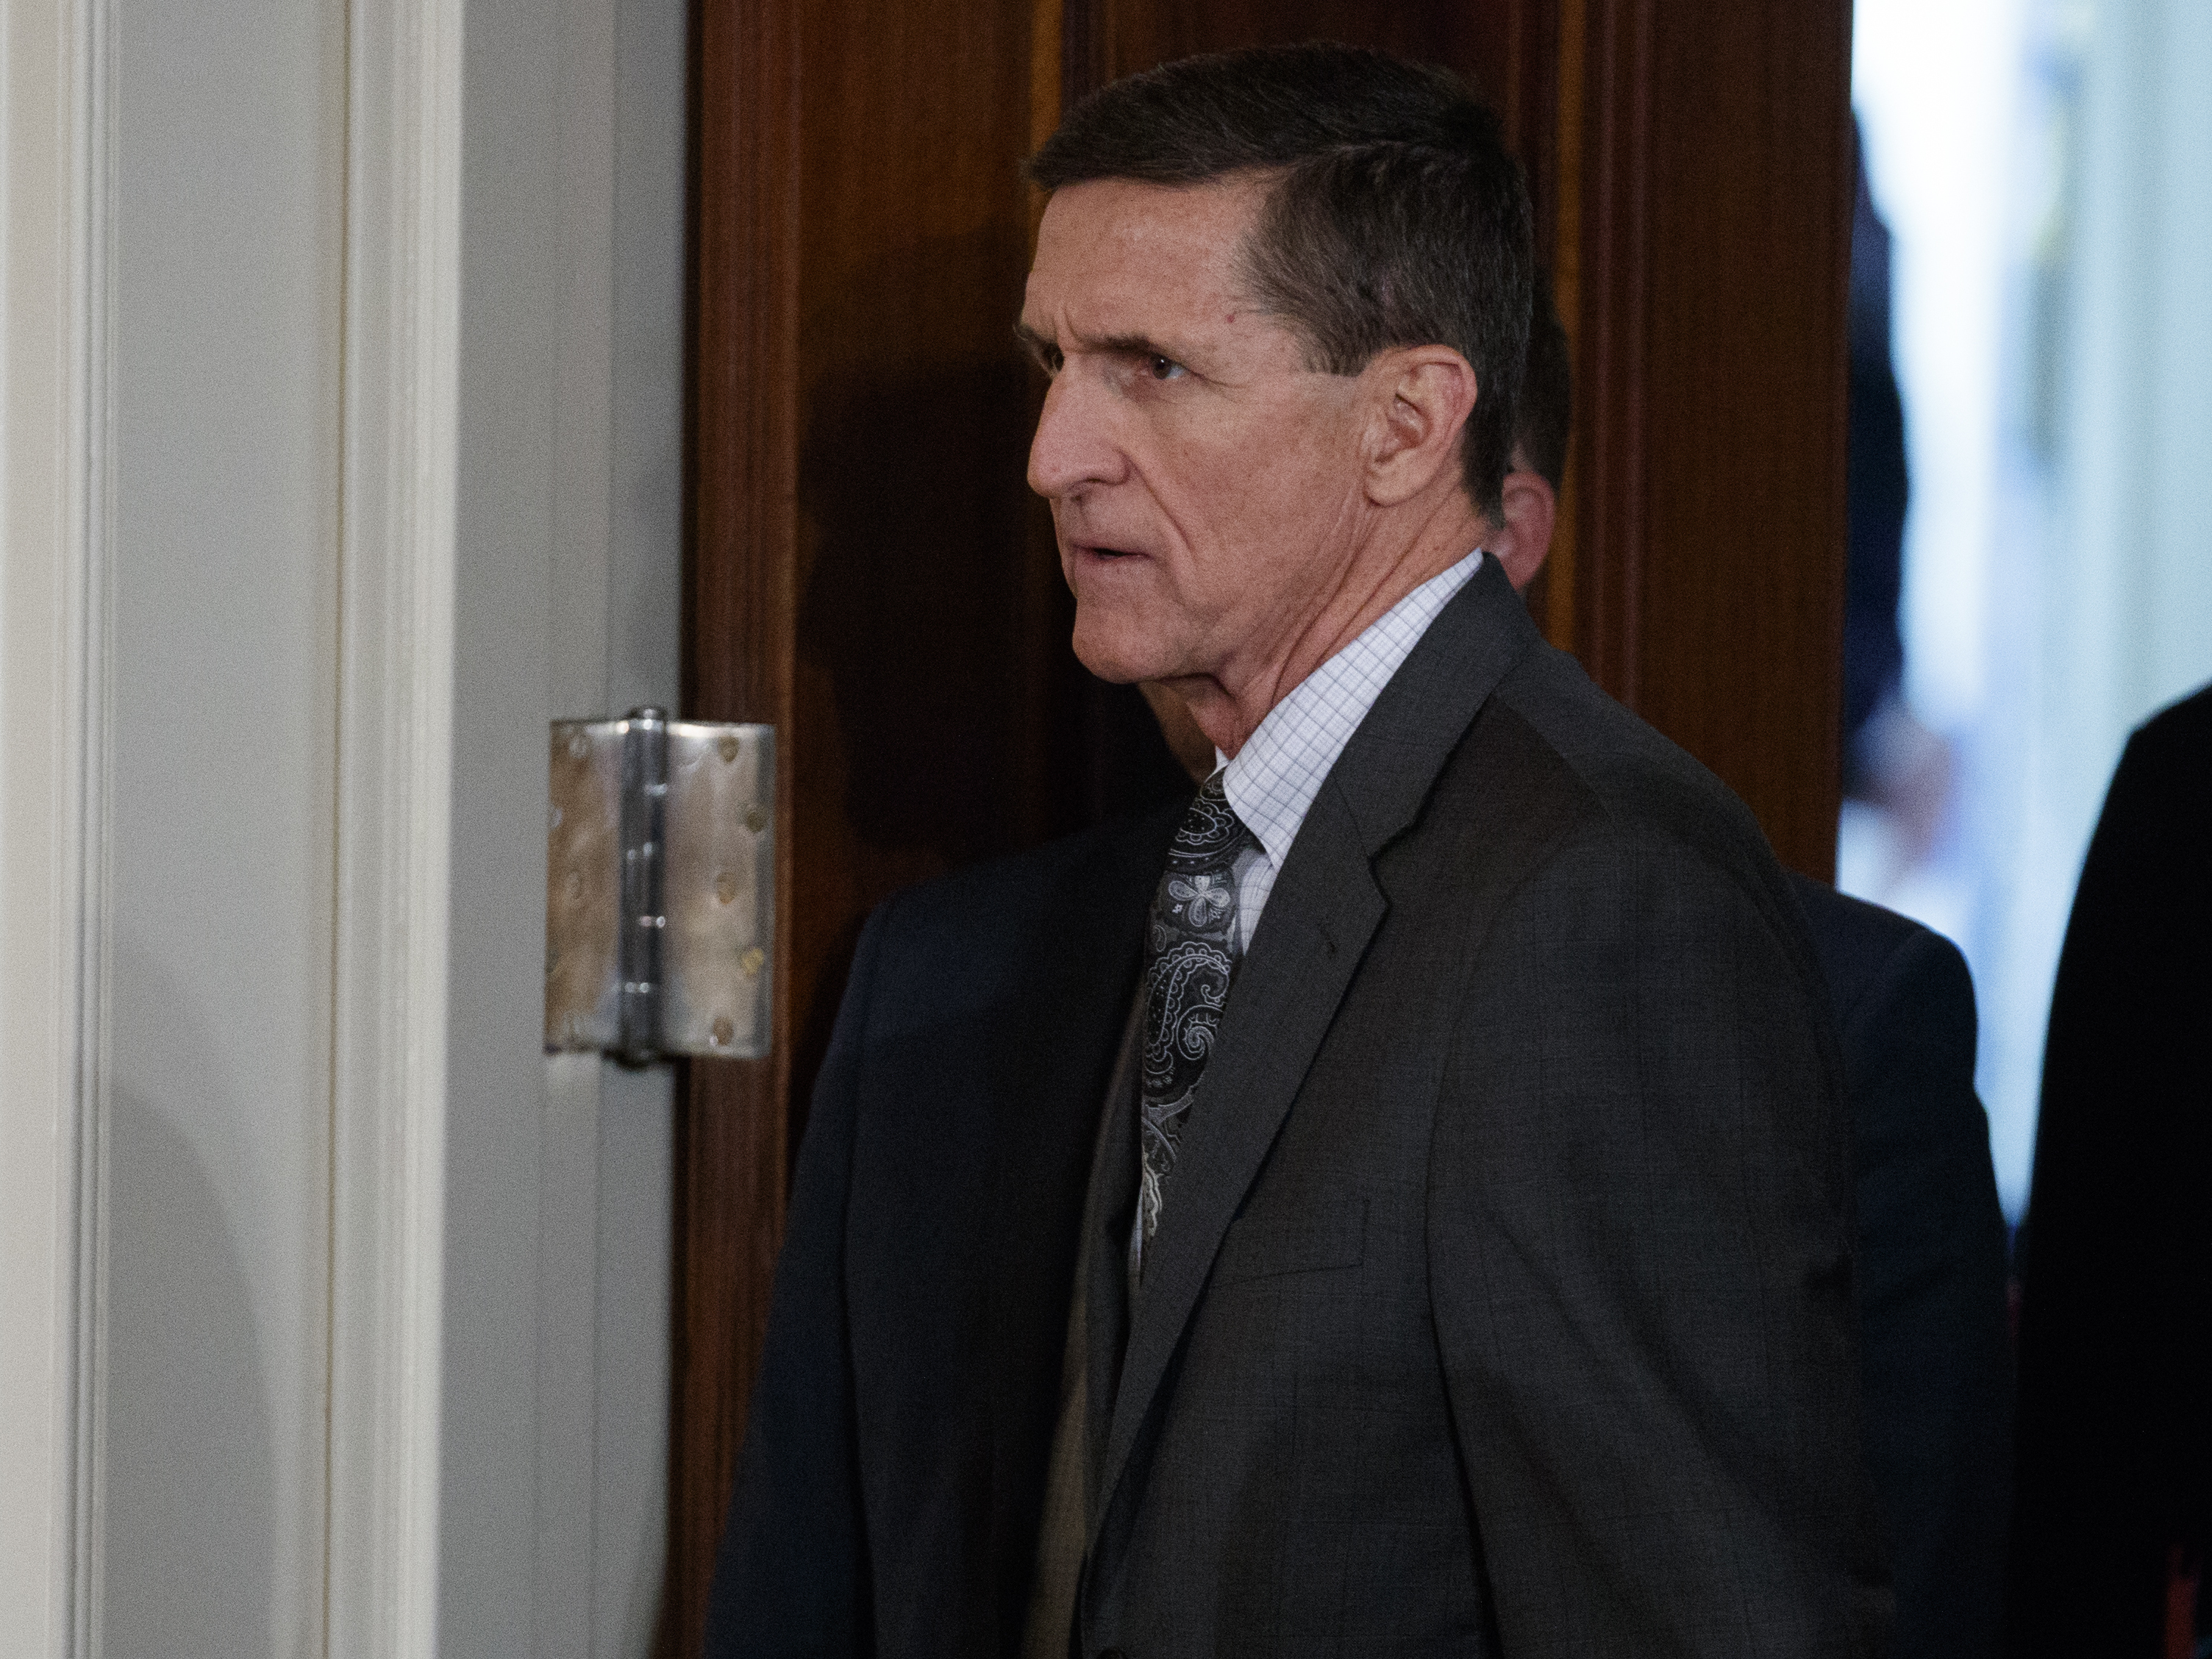 Flynn discussing immunity with intel committees